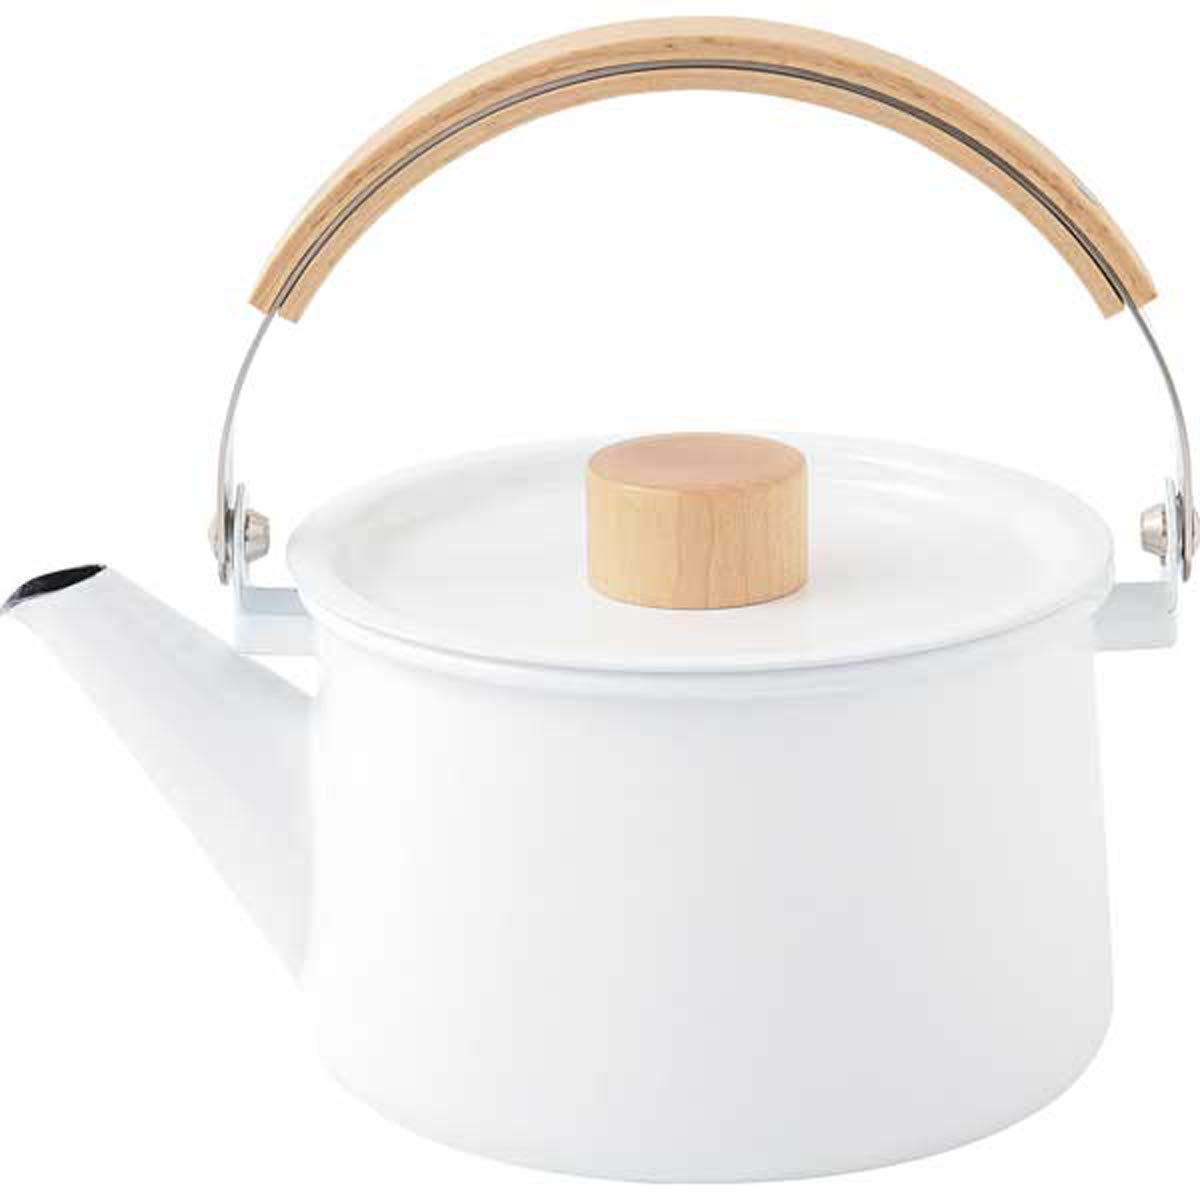 Kaico Kettle 1.45L(49oz) By Makoto Koizumi Spotless Enamel-Coated Steel Stunning Beech Wood Handle Maple Knob Clean Minimalist Design Brightening Kitchen